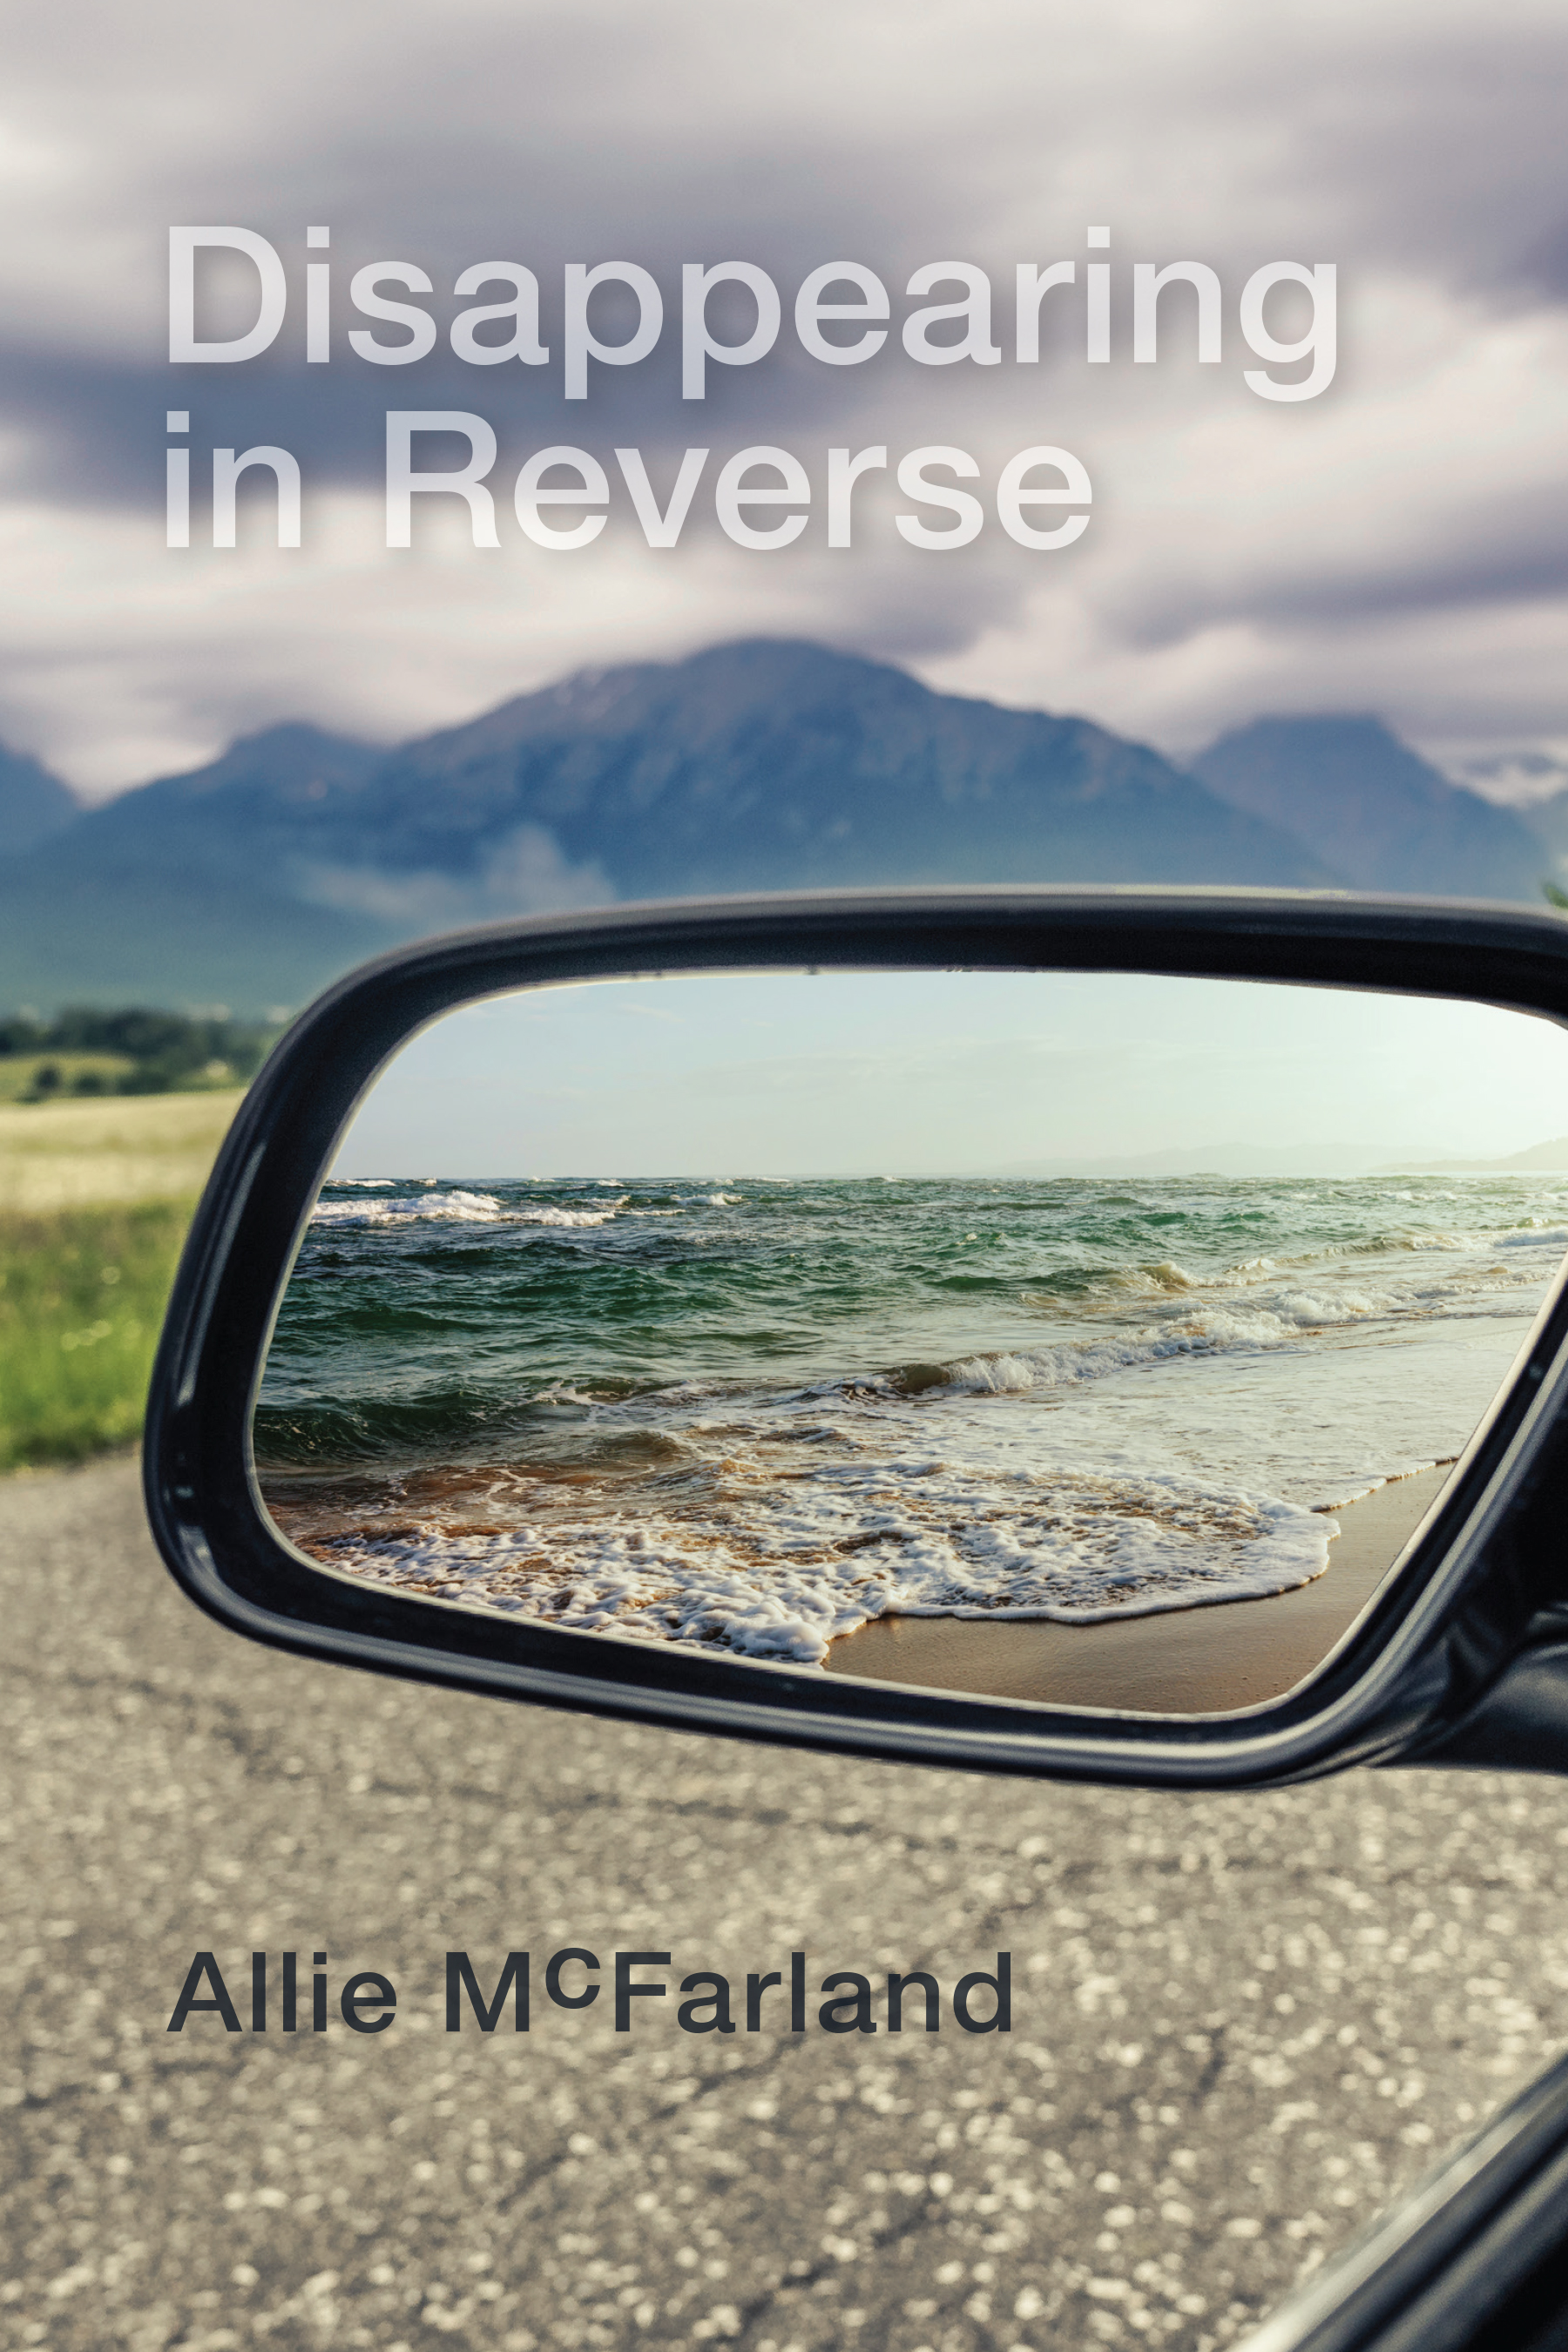 Book Cover Image for: Disappearing in Reverse